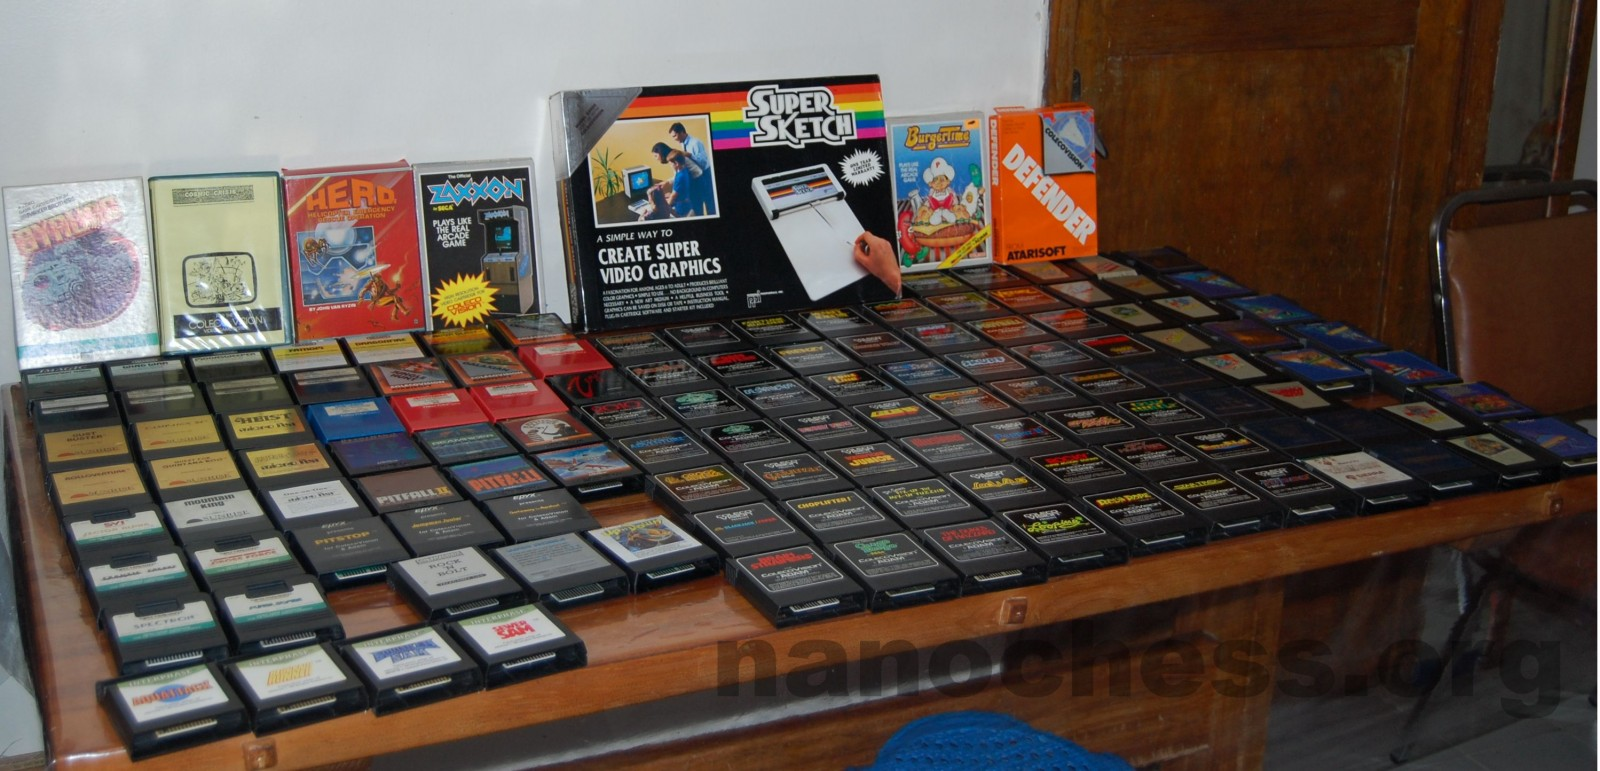 Colecovision collection